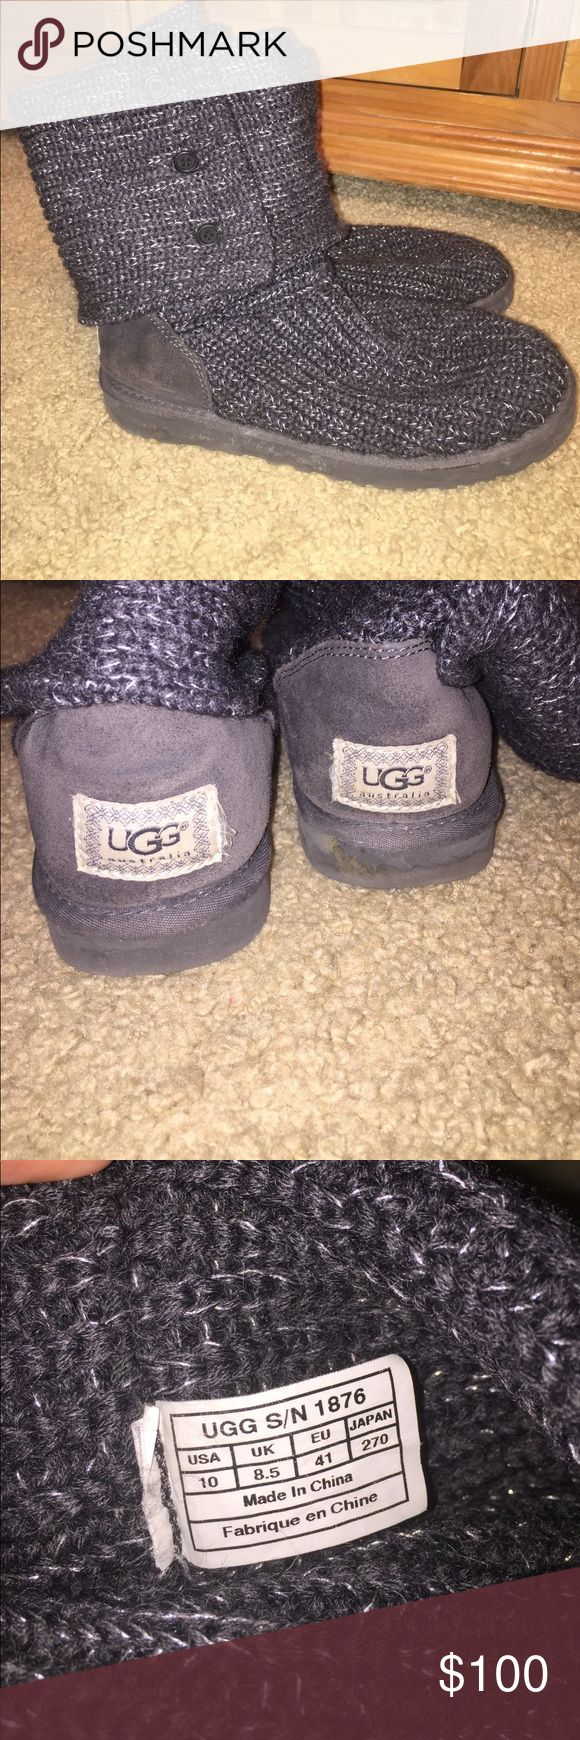 UGG classic cardy sweater boot UGG classic cardy sweater boot, grey and silver, great condition! UGG Shoes Winter & Rain Boots